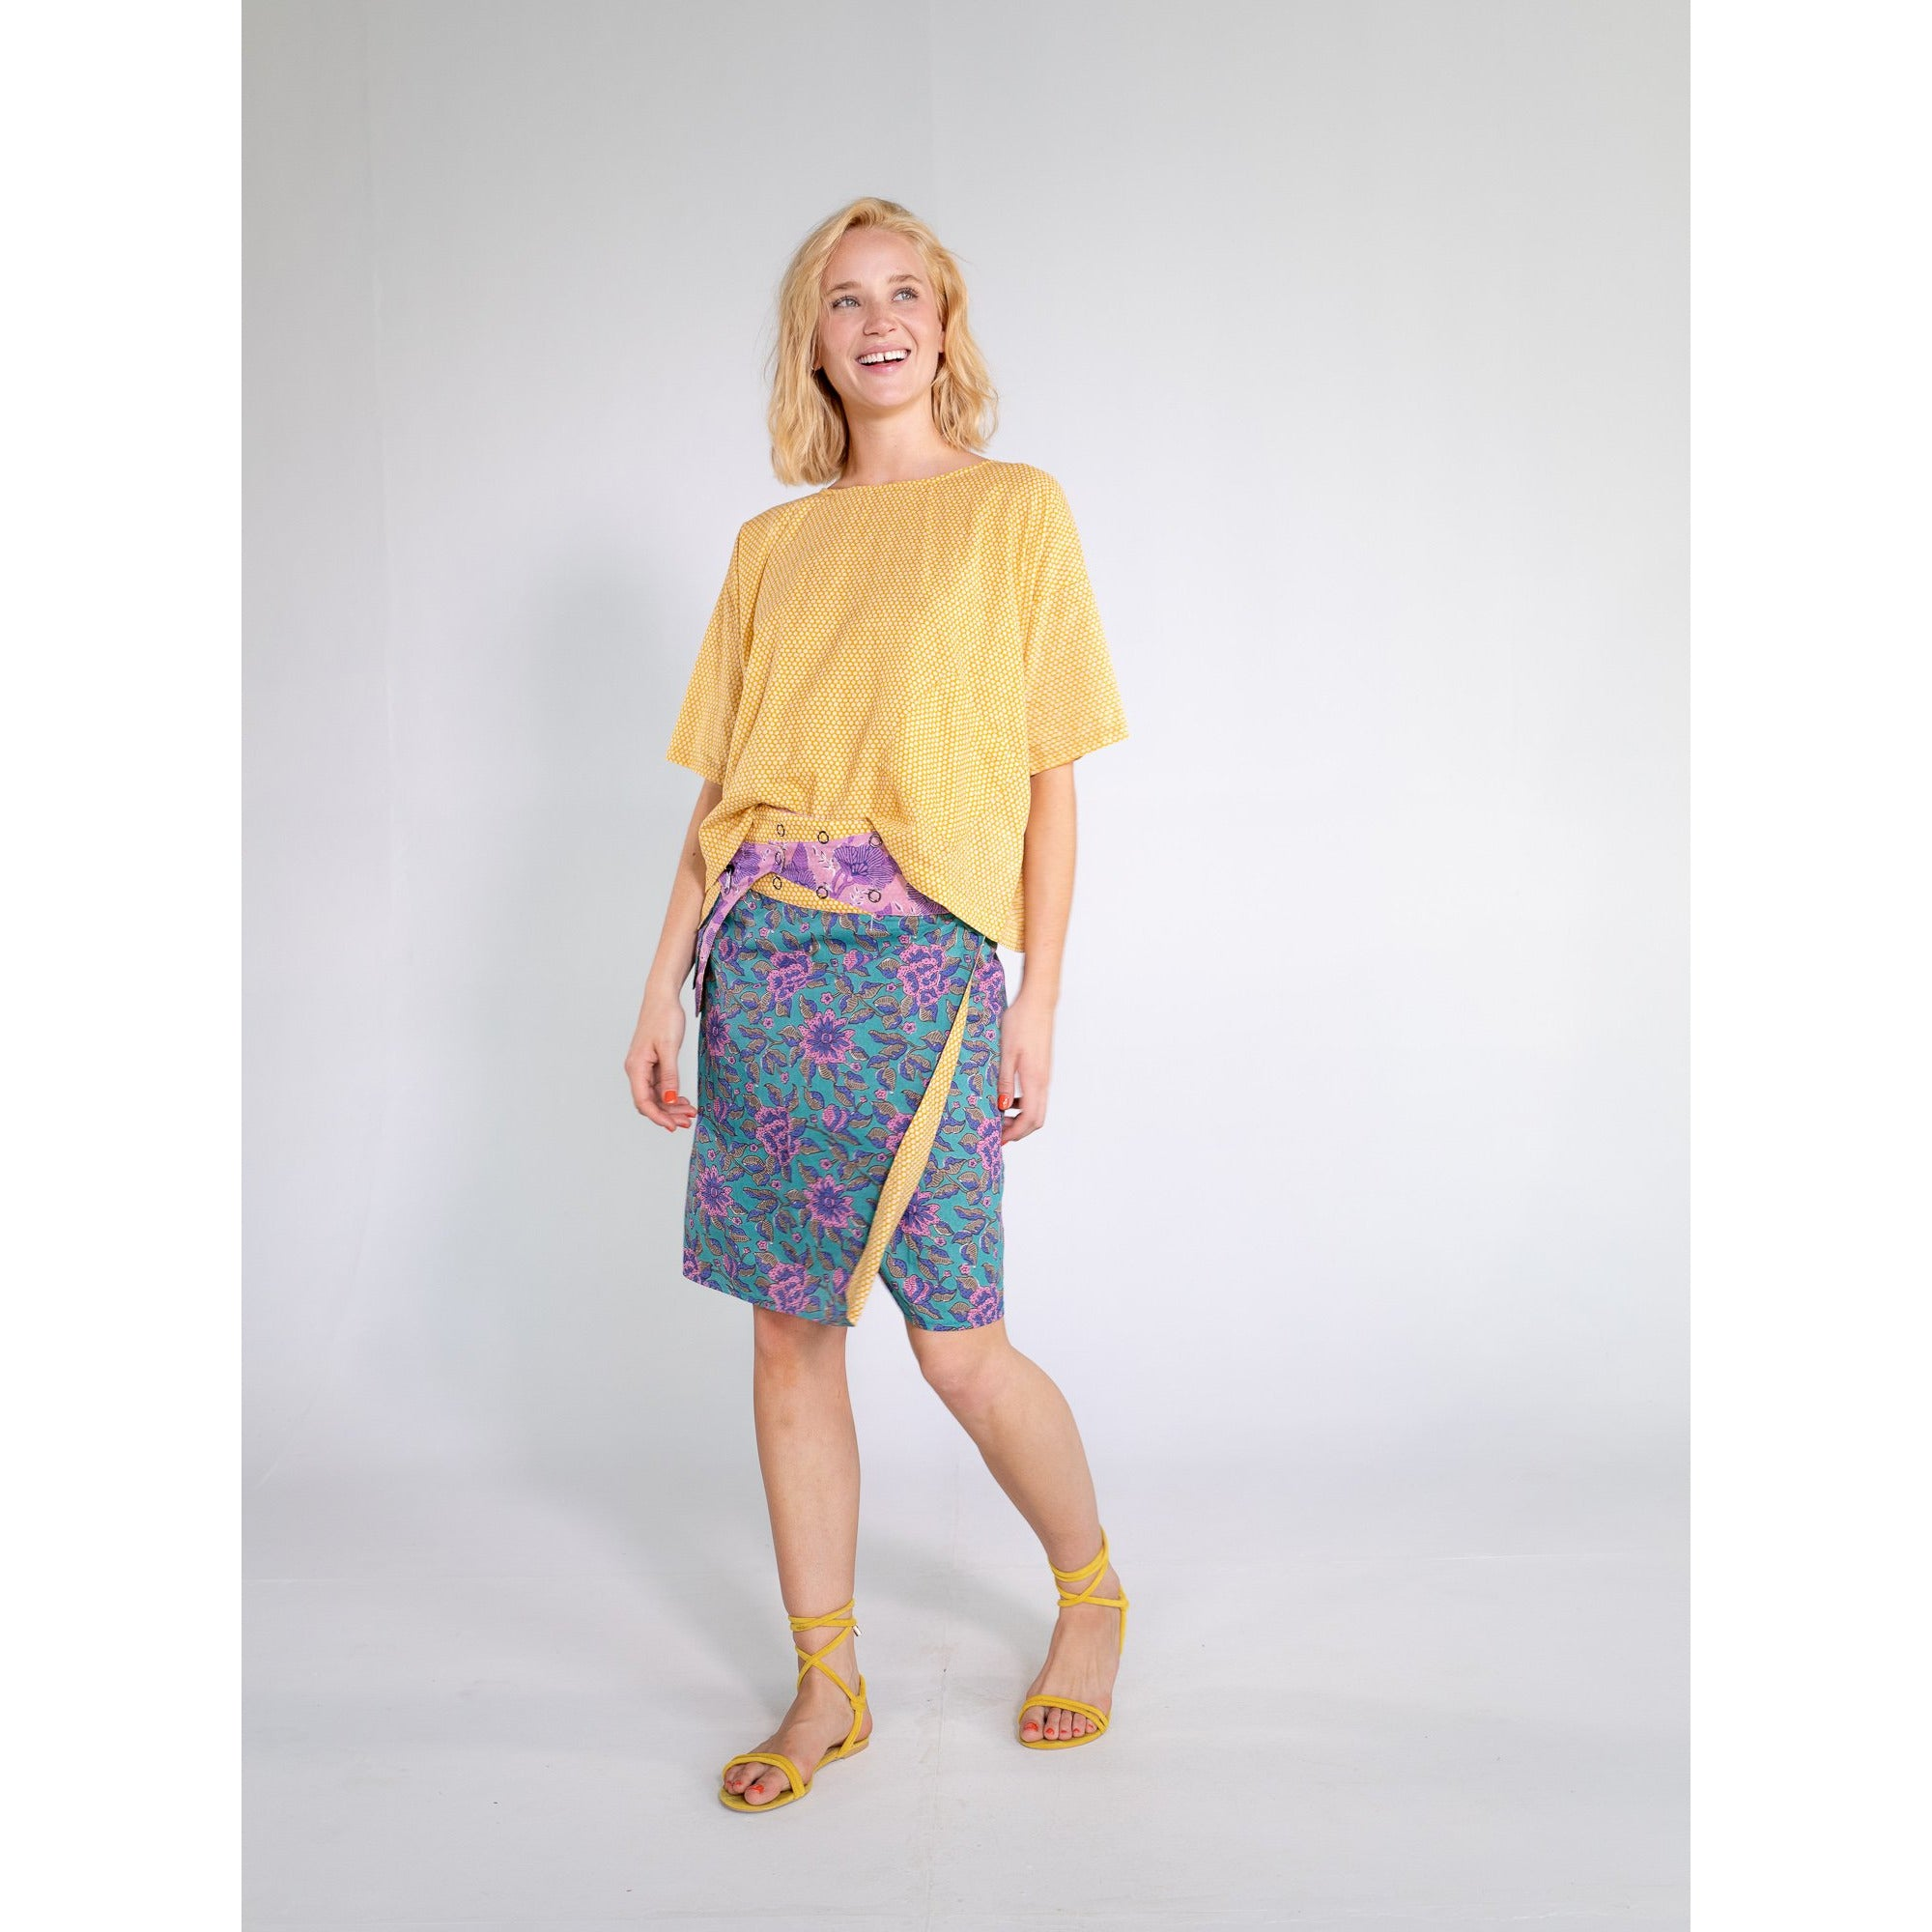 Boom Shankar Rosanna Long Skirt in Jade spice